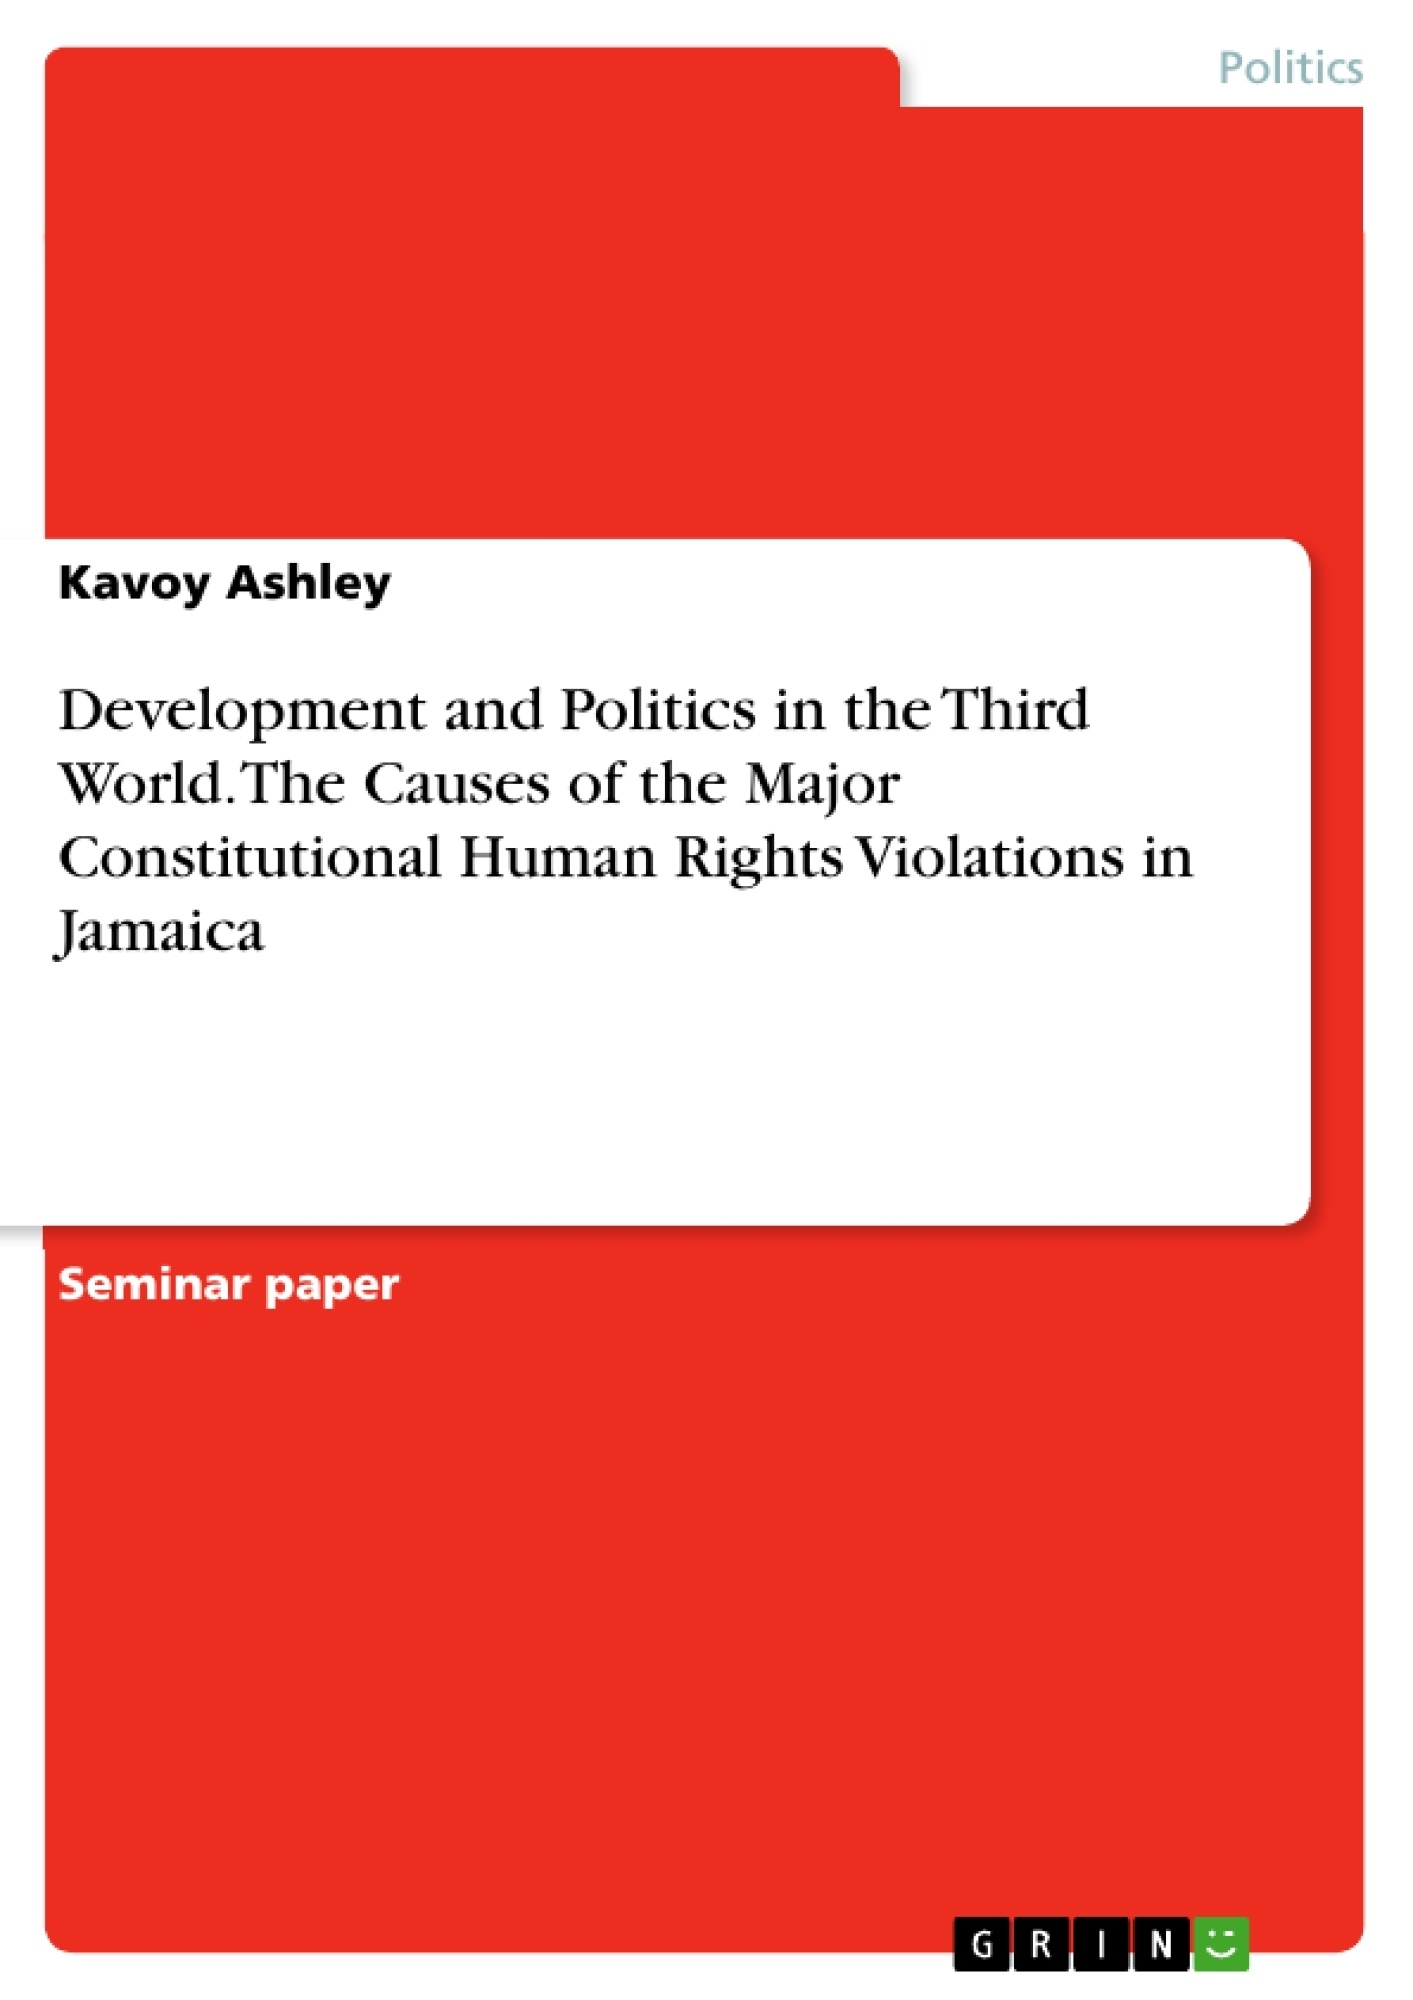 Title: Development and Politics in the Third World. The Causes of the Major Constitutional Human Rights Violations in Jamaica